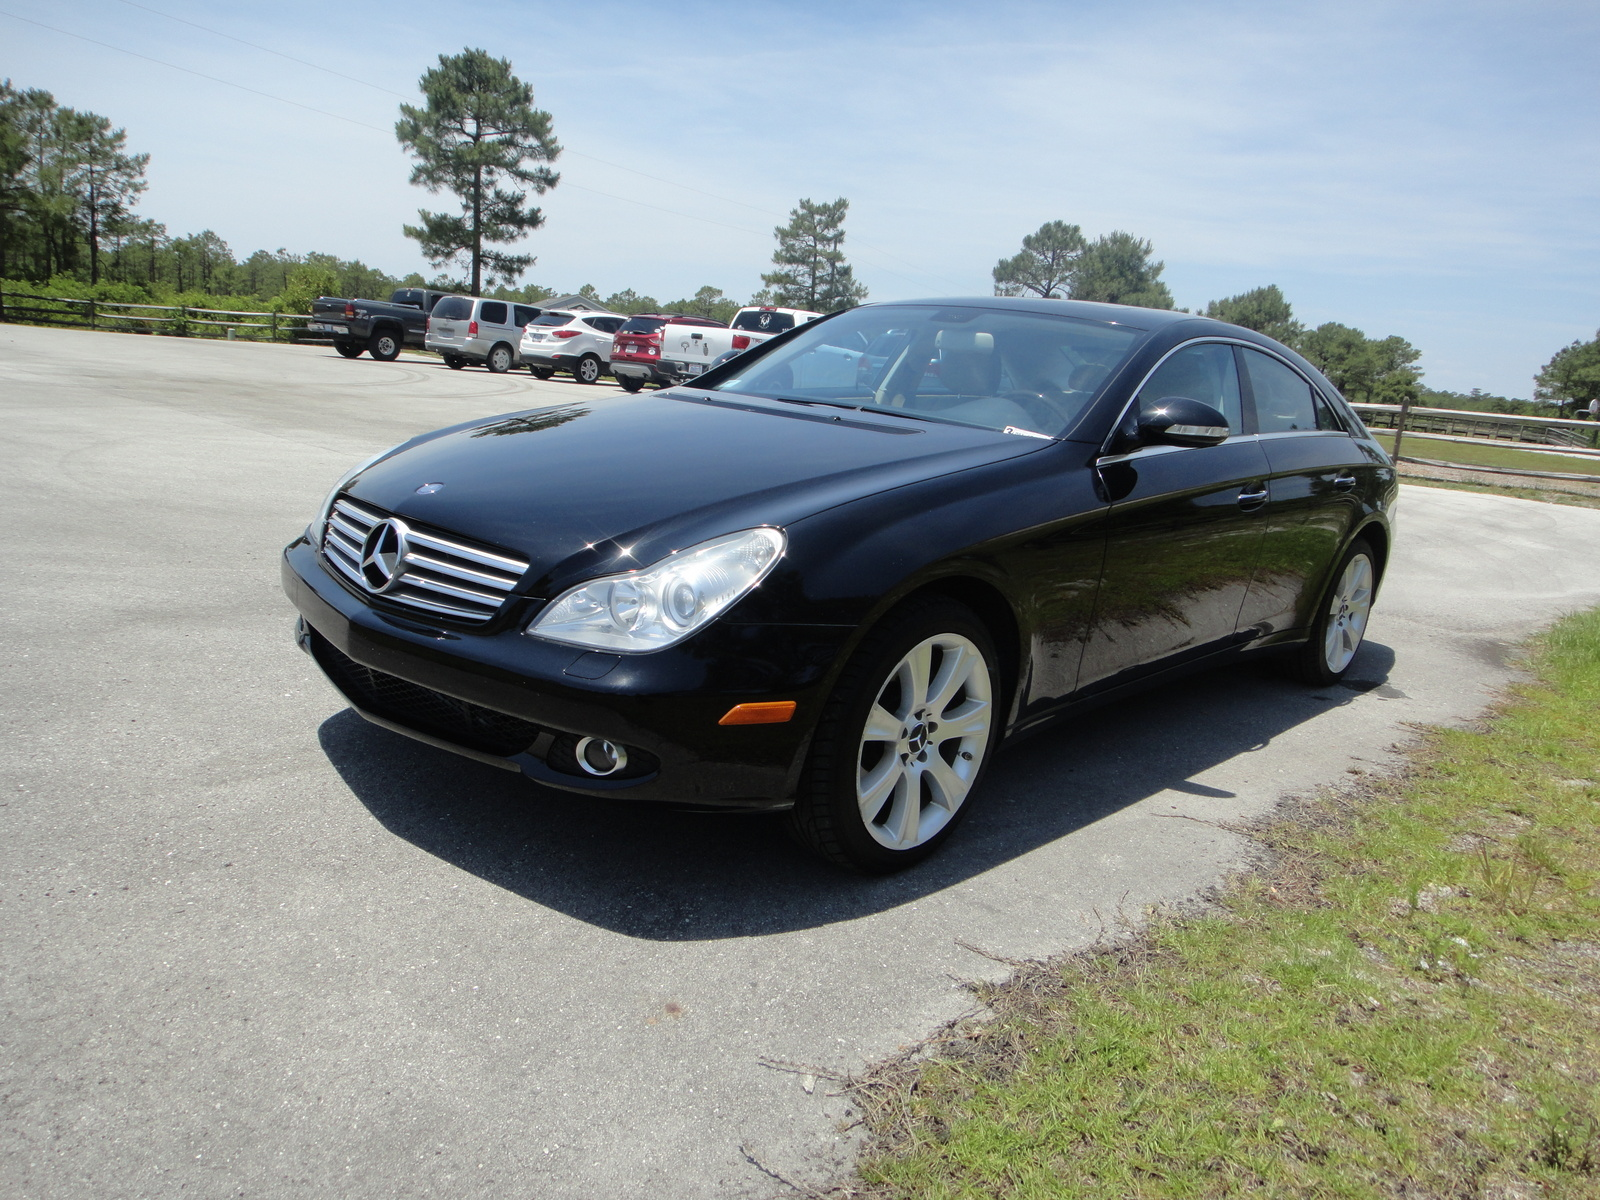 2008 mercedes benz cls class pictures cargurus for 2008 mercedes benz cls 550 reviews